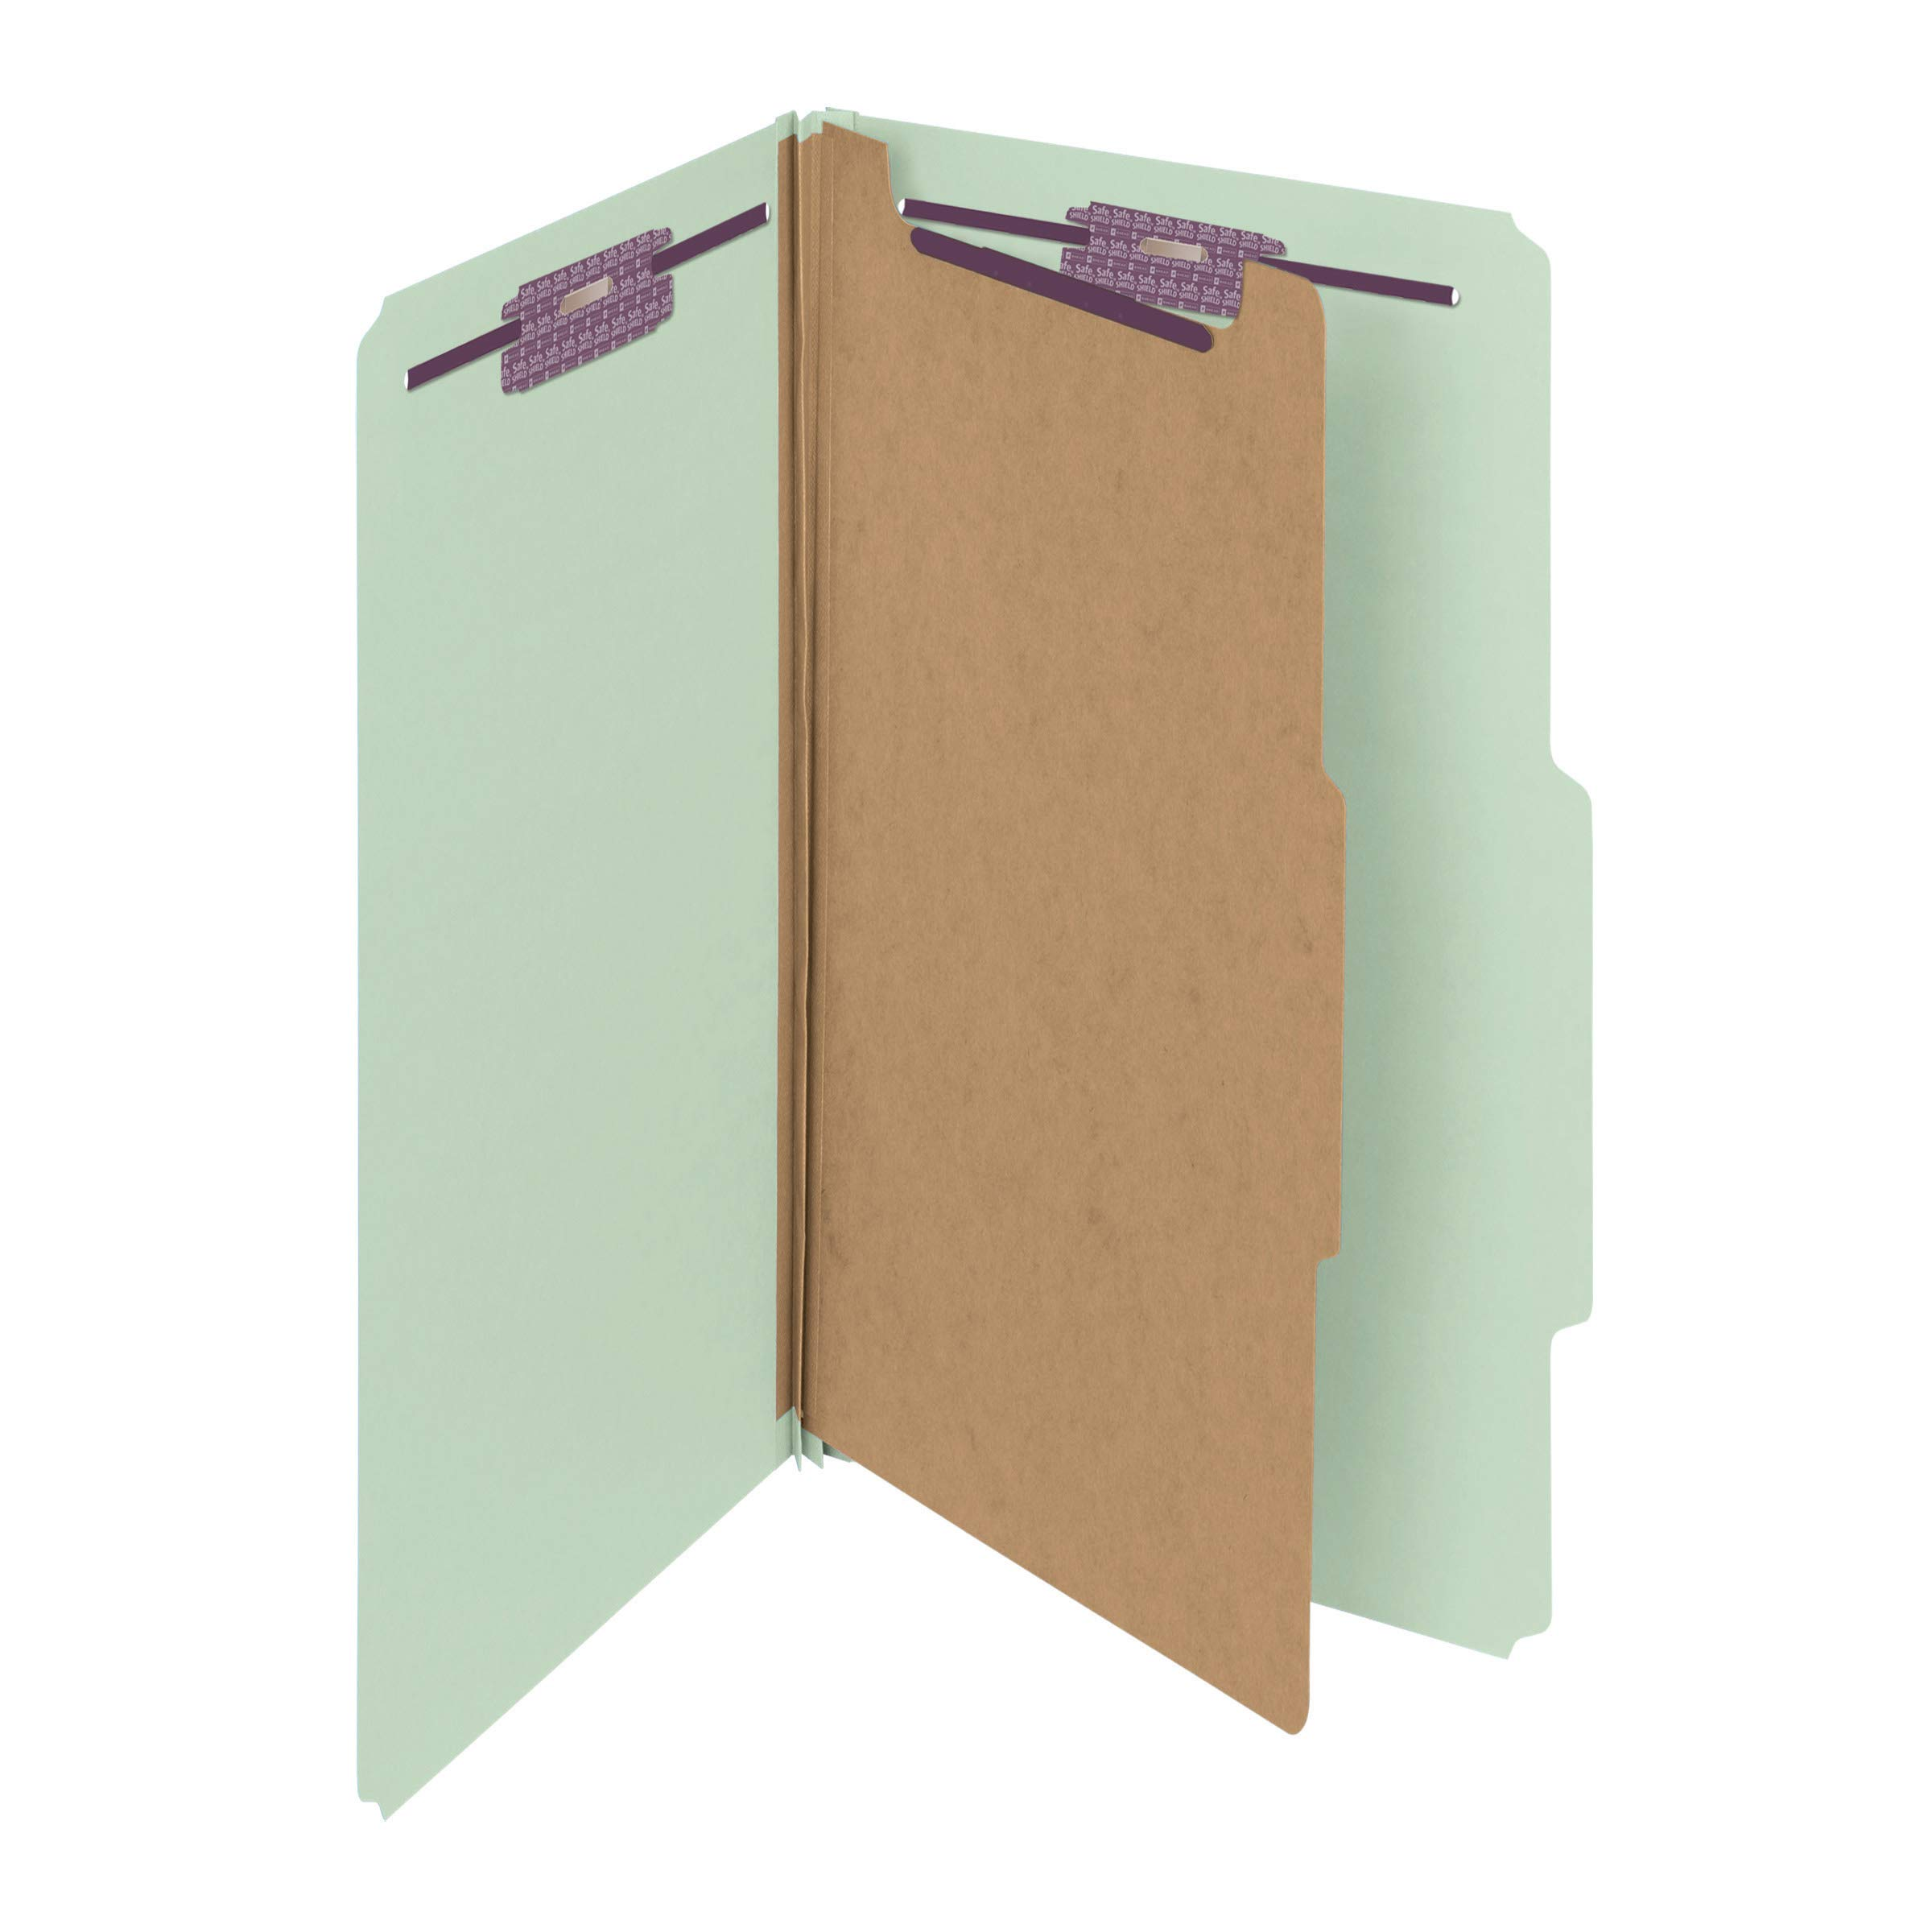 Smead Pressboard Classification File Folder with SafeSHIELD Fasteners, 1 Divider, 2'' Expansion, Legal Size, Gray/Green, 10 per Box (18776) by Smead